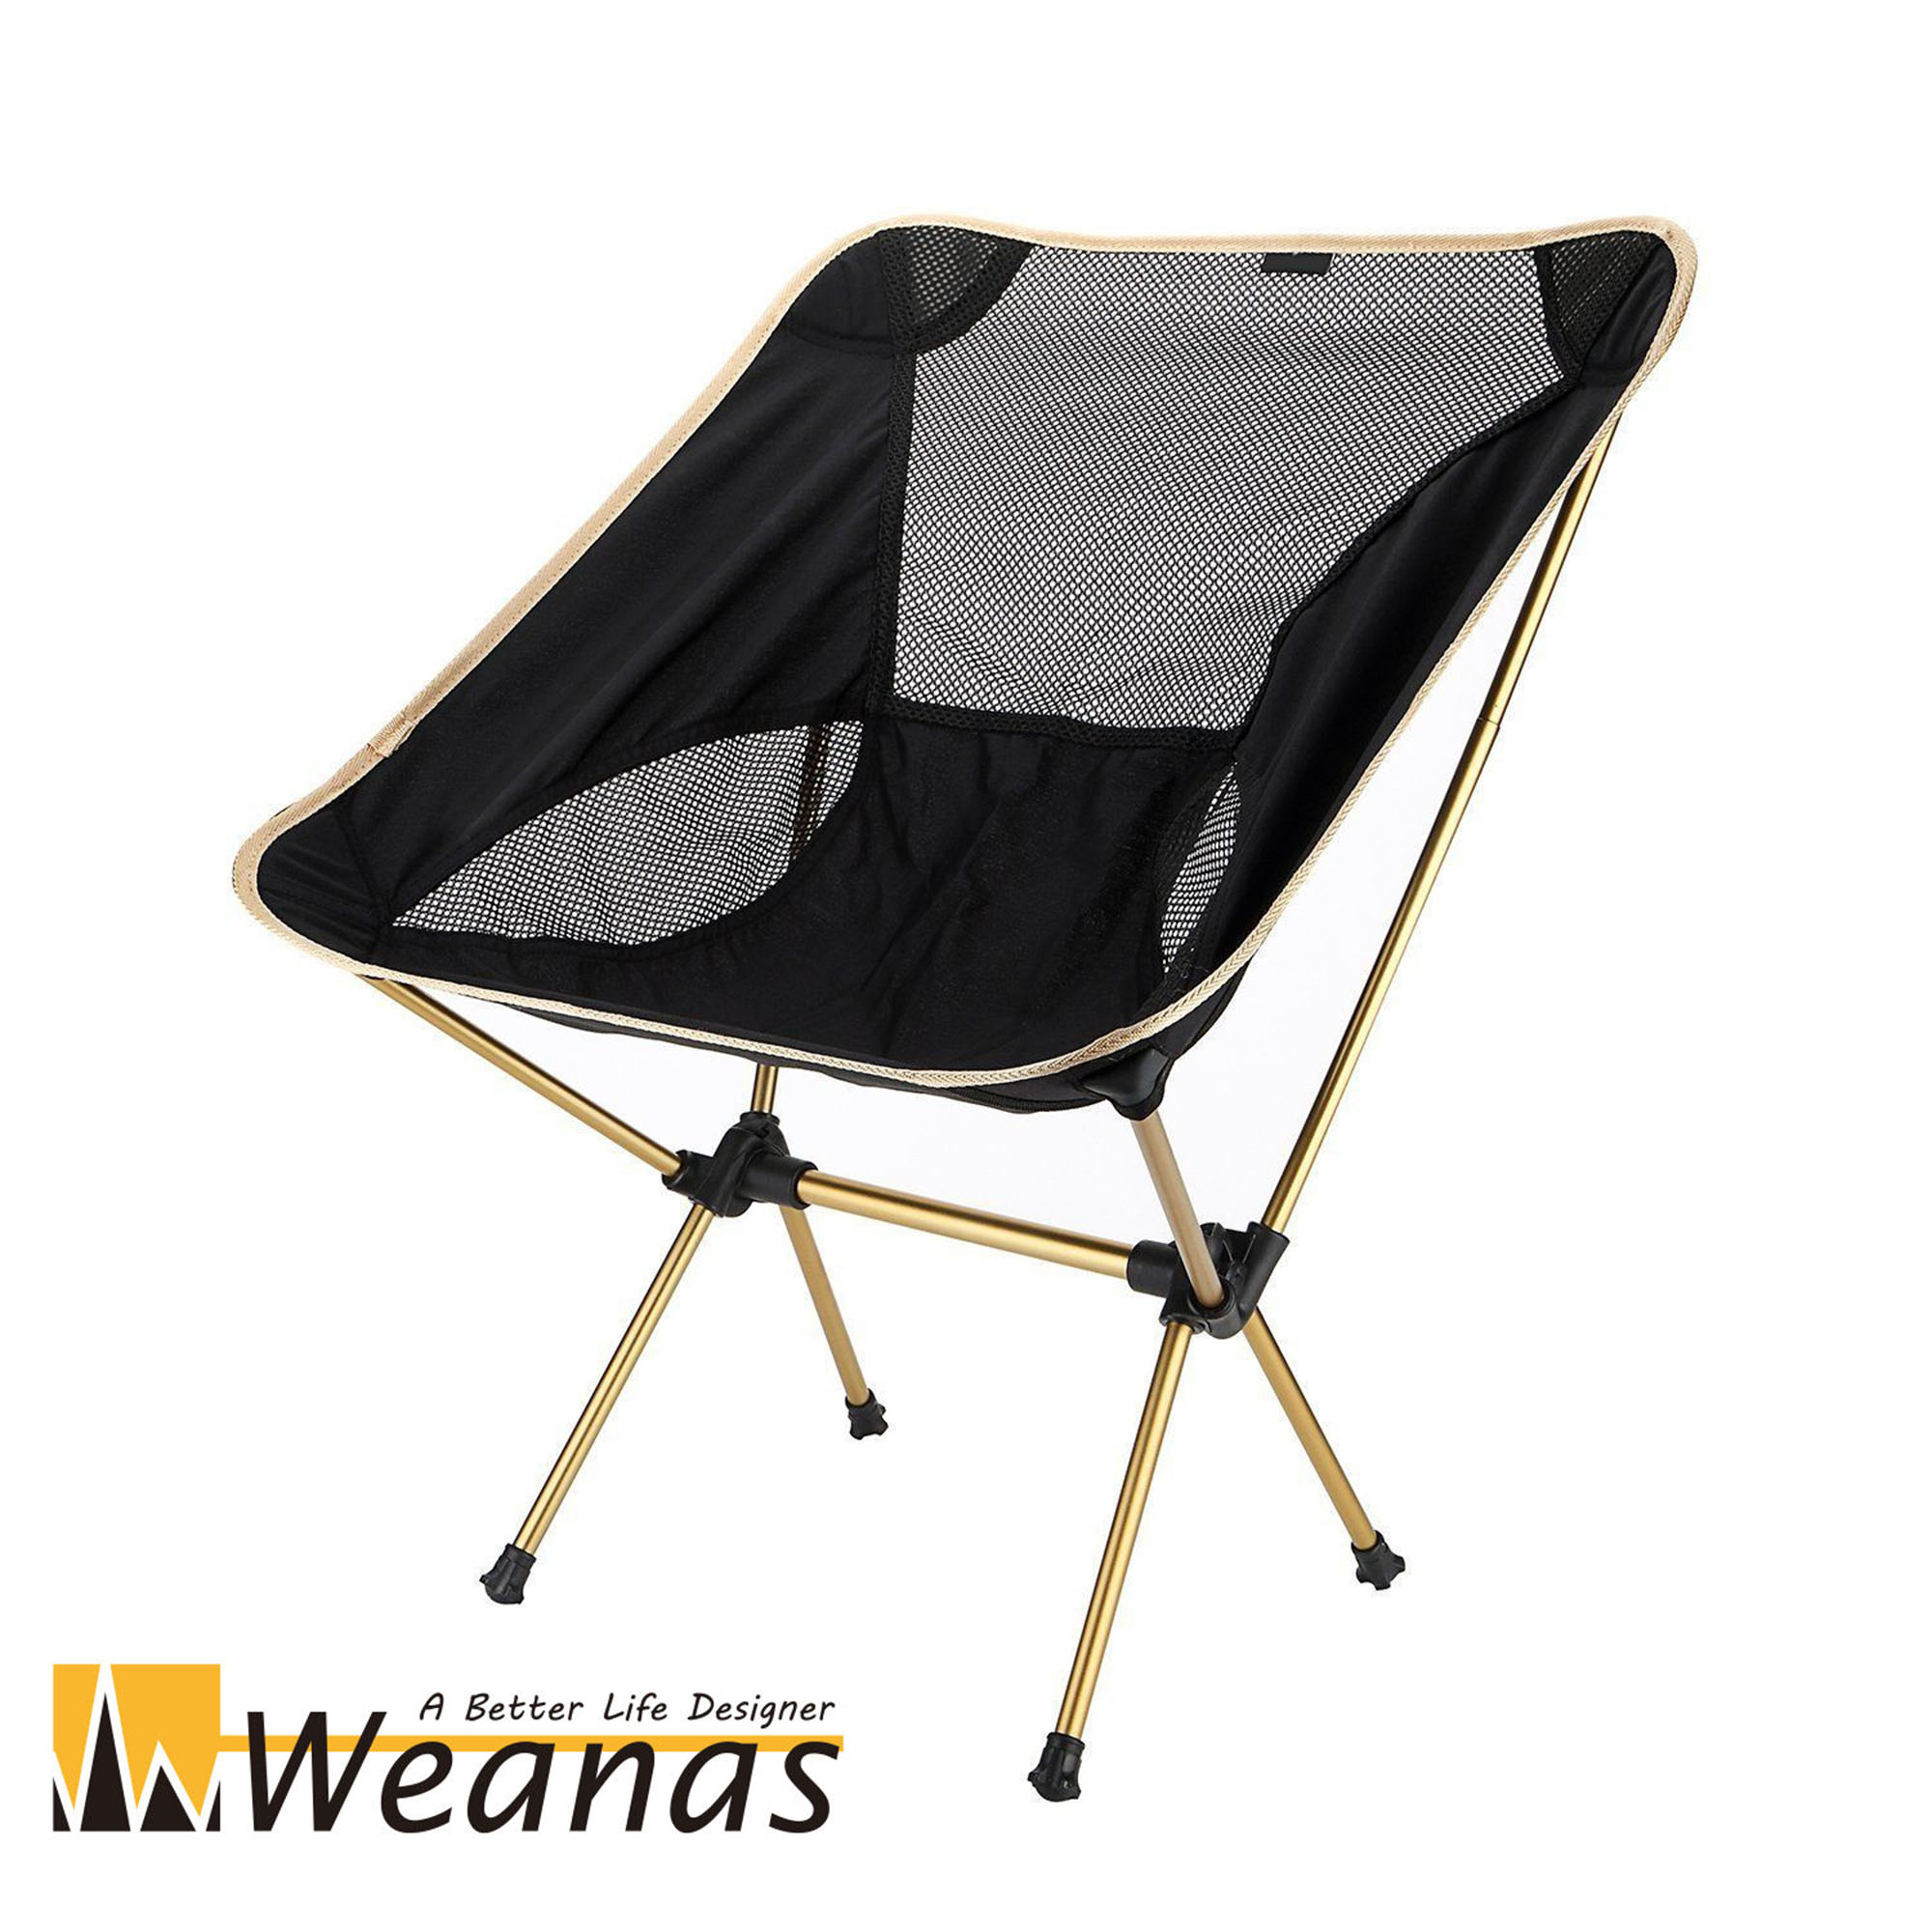 WEANAS Portable Ultralight Collapsible Moon Leisure Campi...